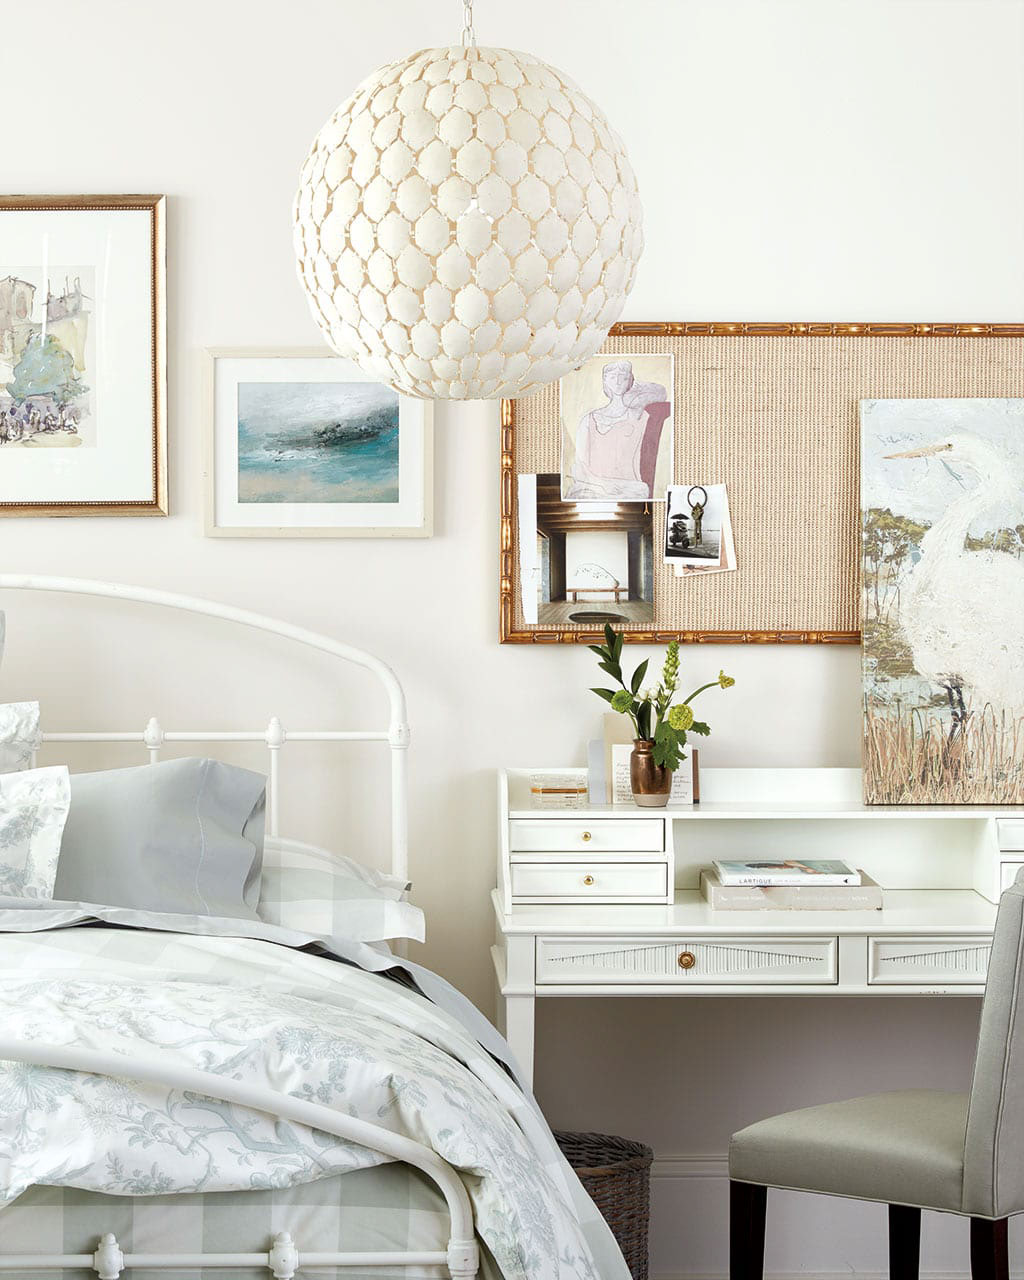 Double duty decor is a 2021 design trend such as this desk that's also used as a nightstand!